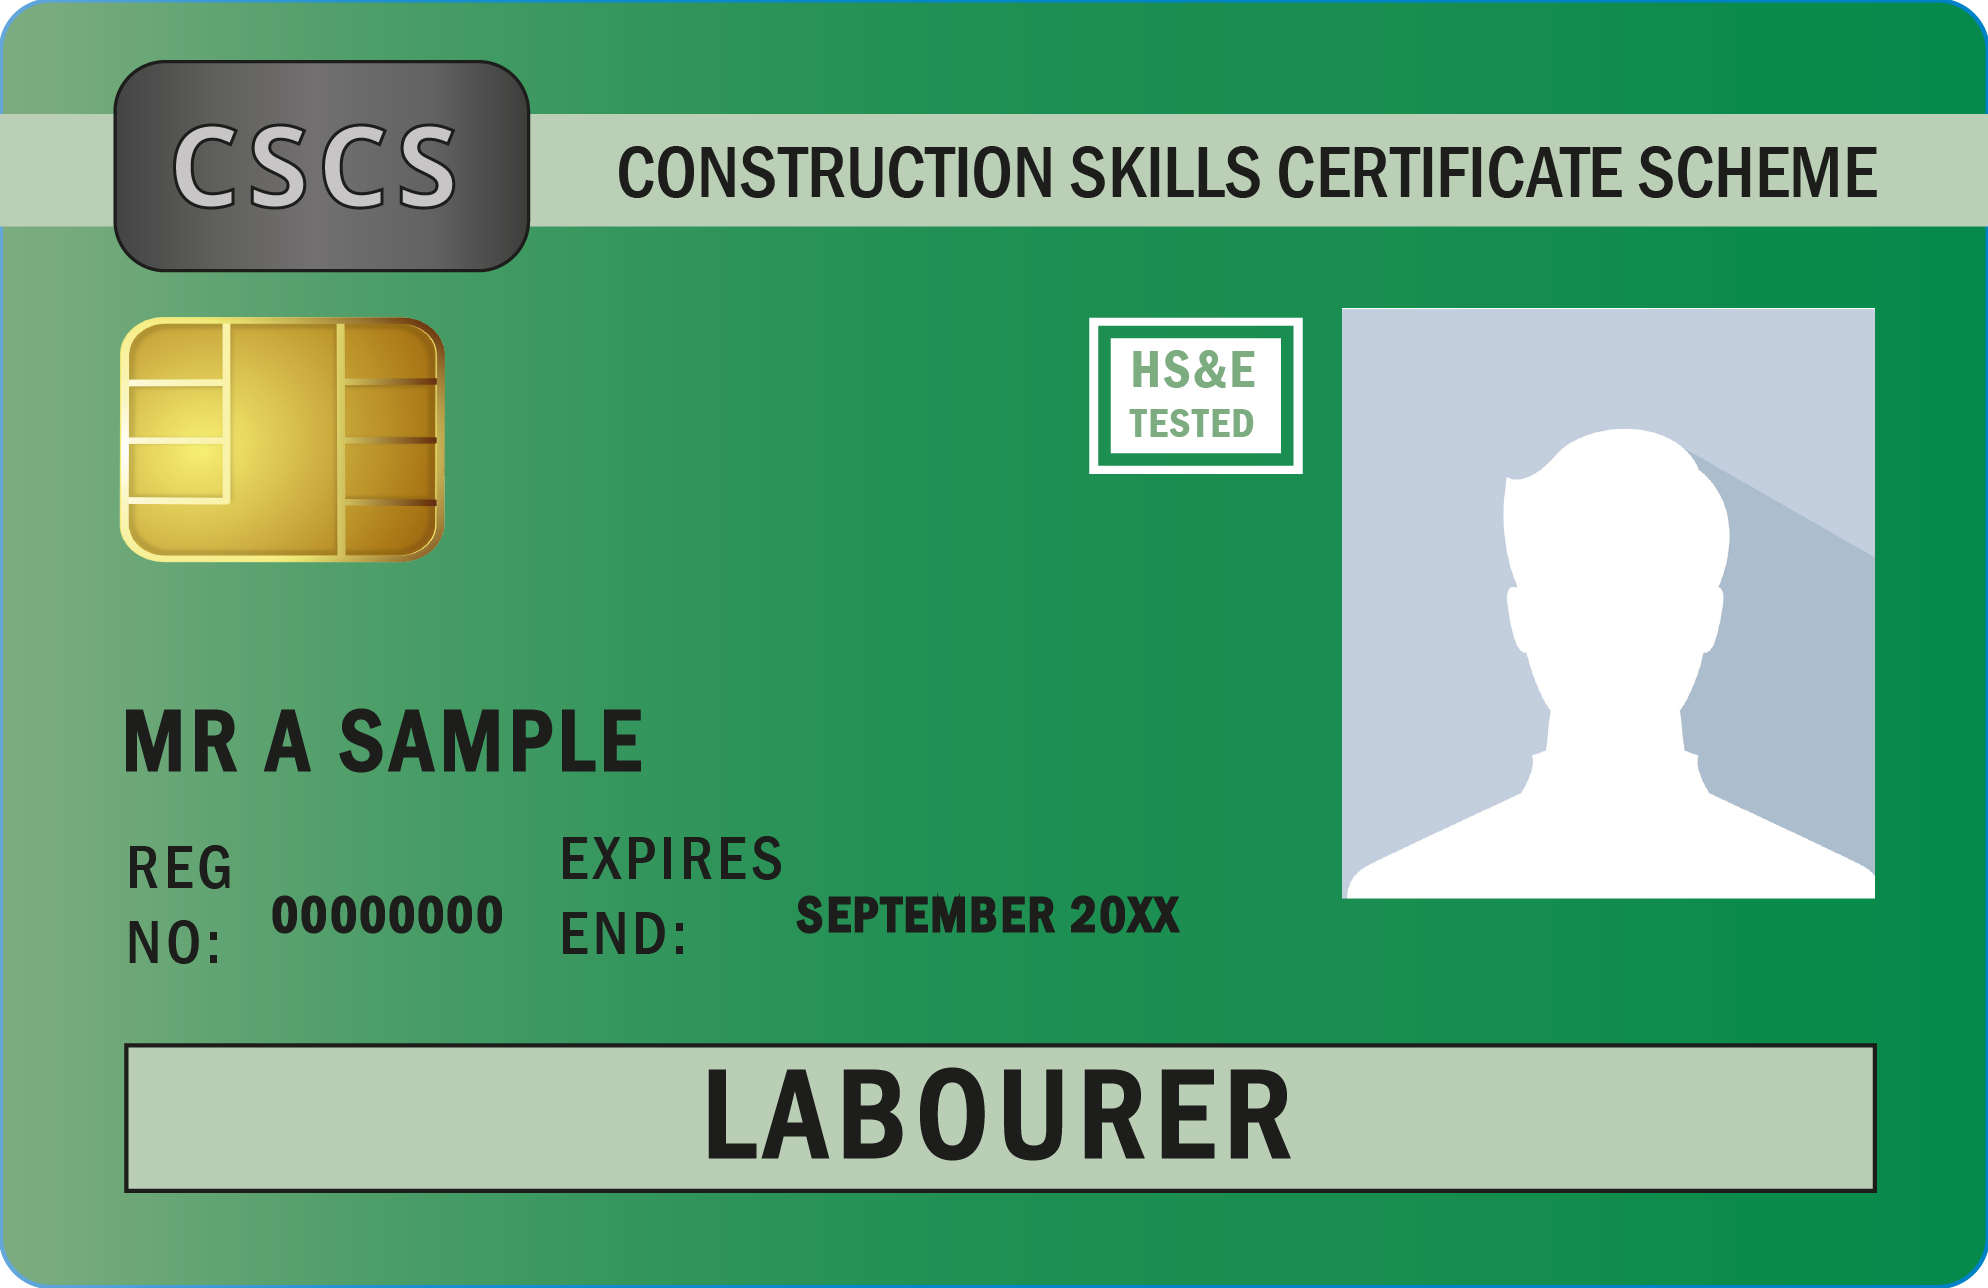 image shows the CSCS green labourer card